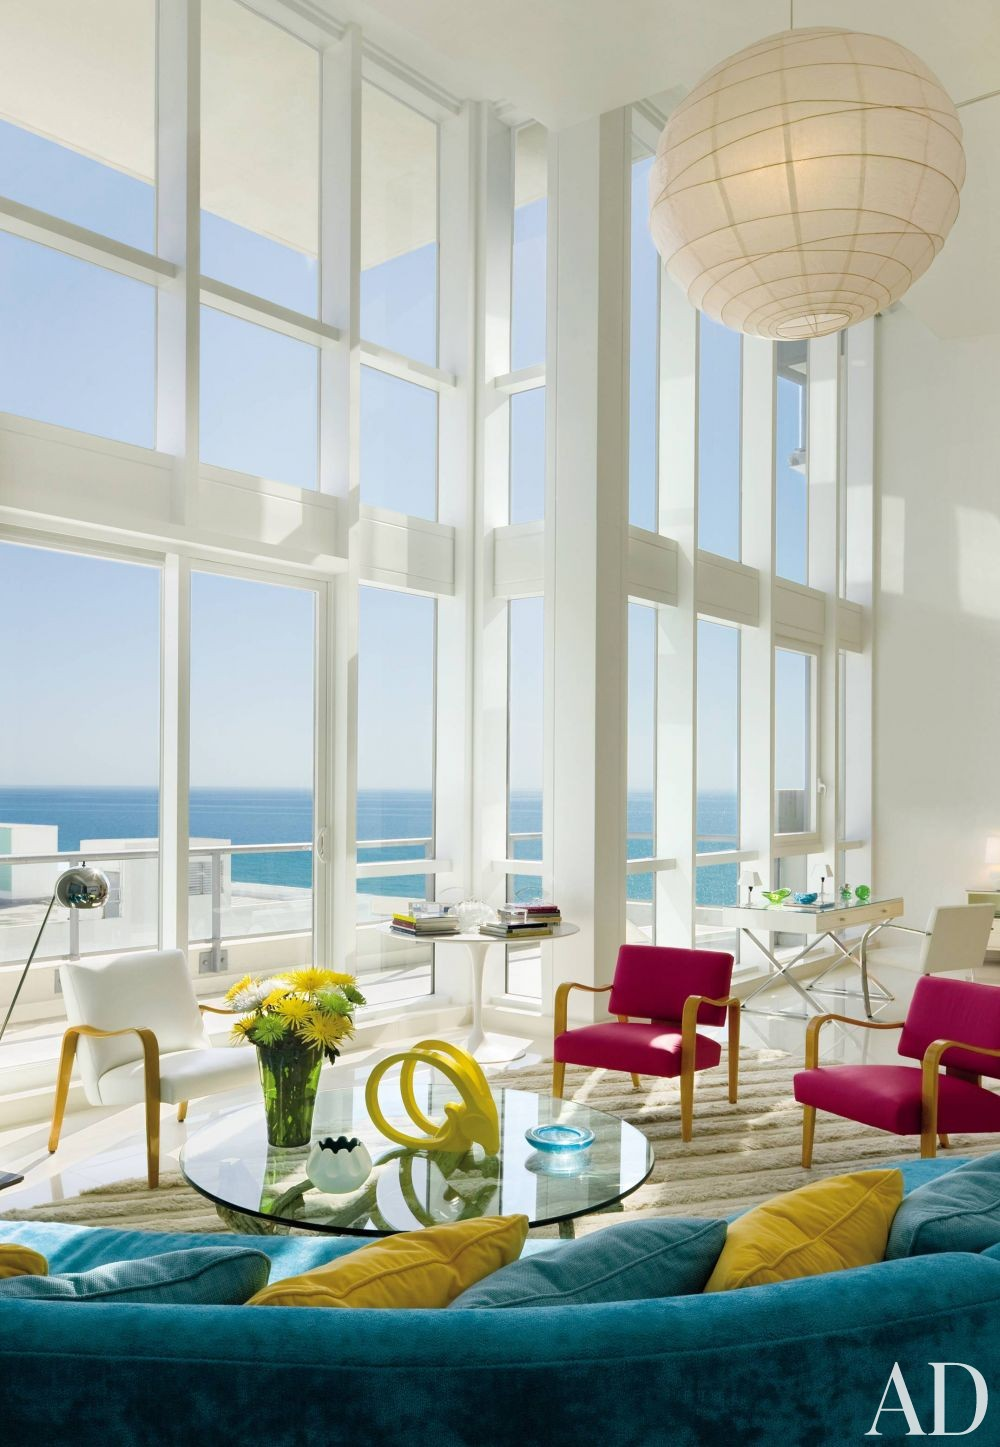 Modern Living Room By John Barman Inc By Architectural Digest AD DesignFil